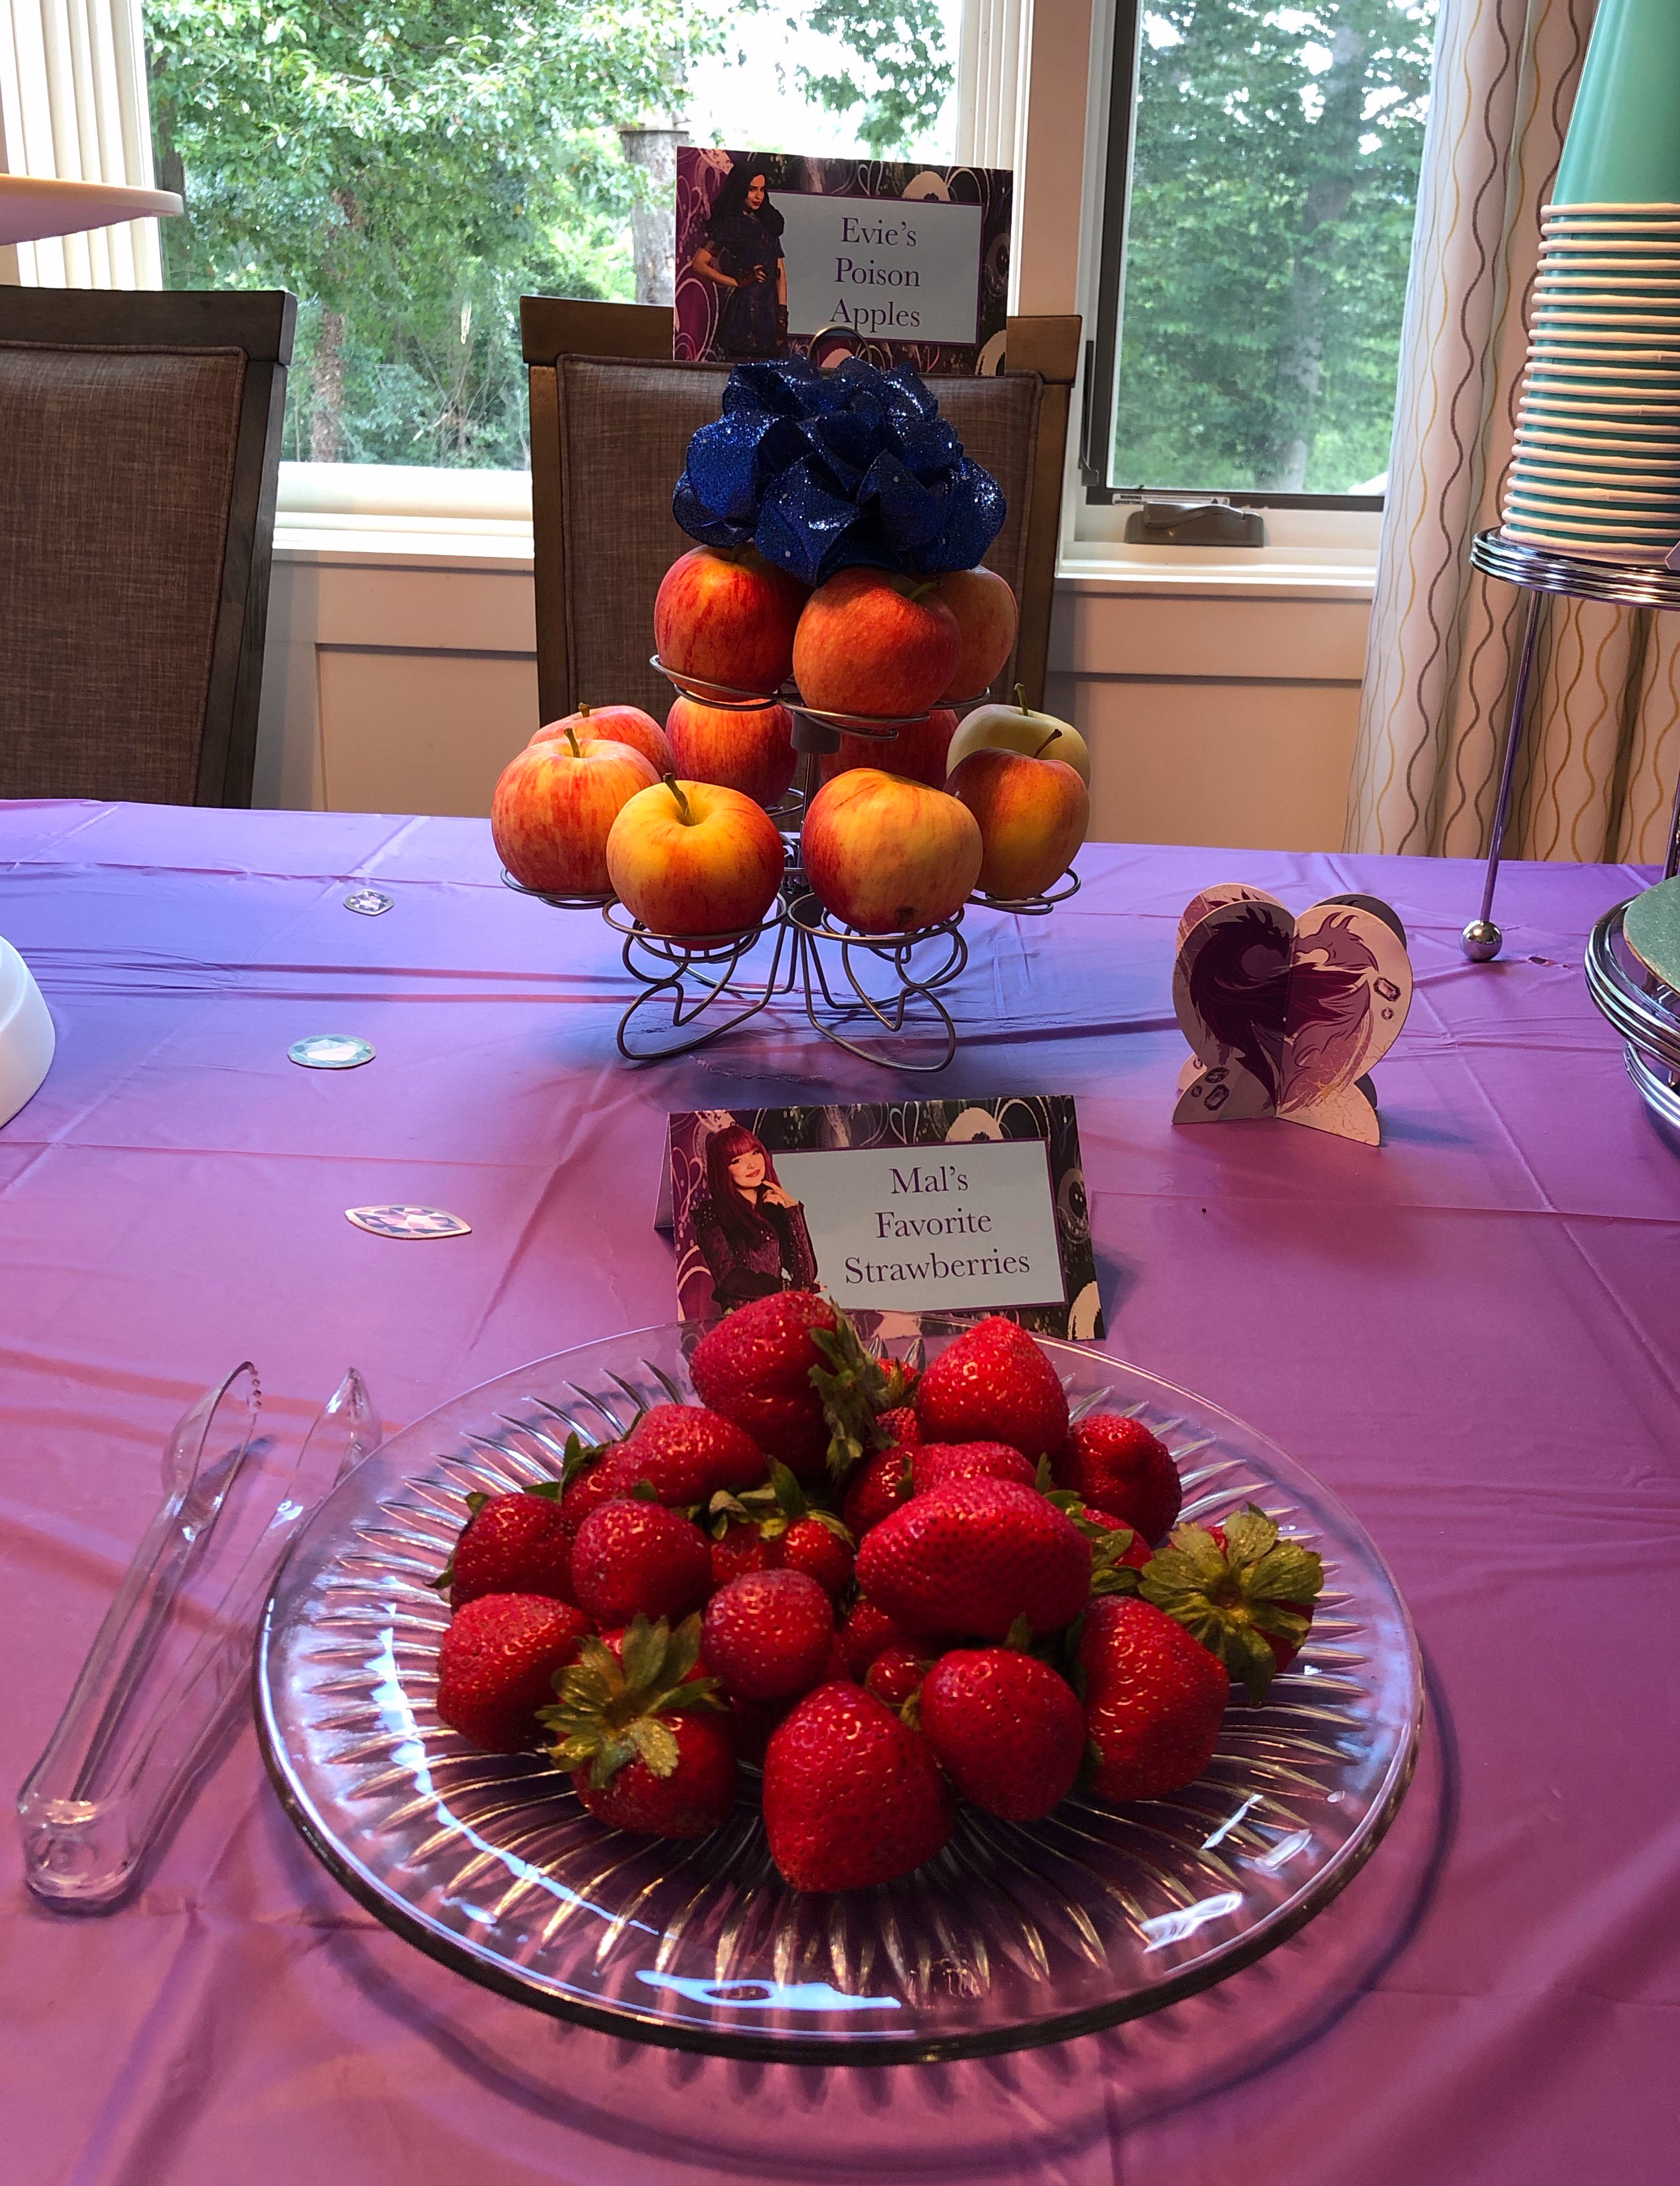 Descendants Party Food based on character